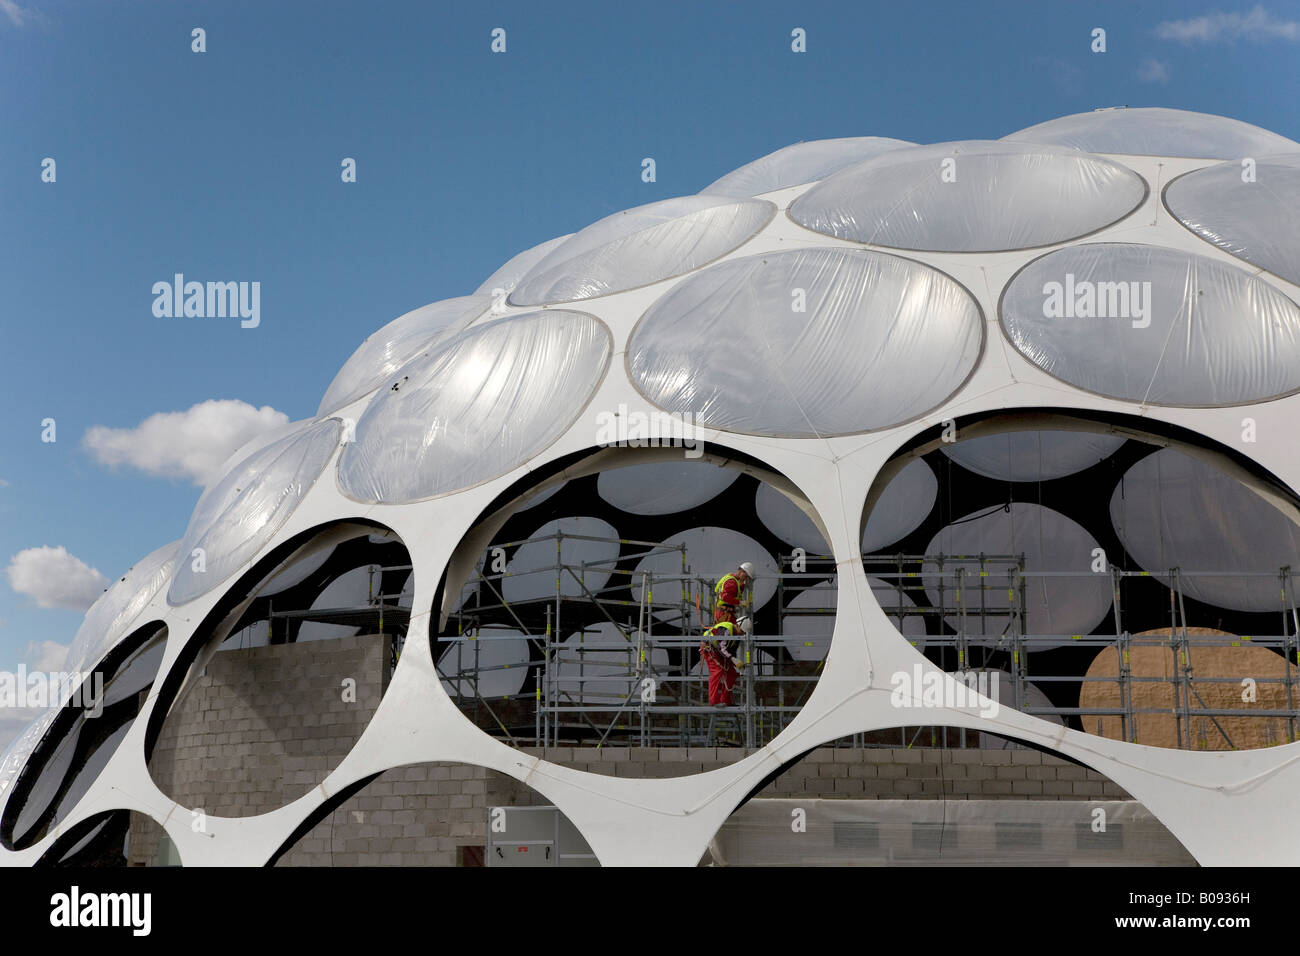 'Thirst' themed area building site at the Expo 2008 grounds, Zaragoza, Saragossa, Aragon, Spain - Stock Image